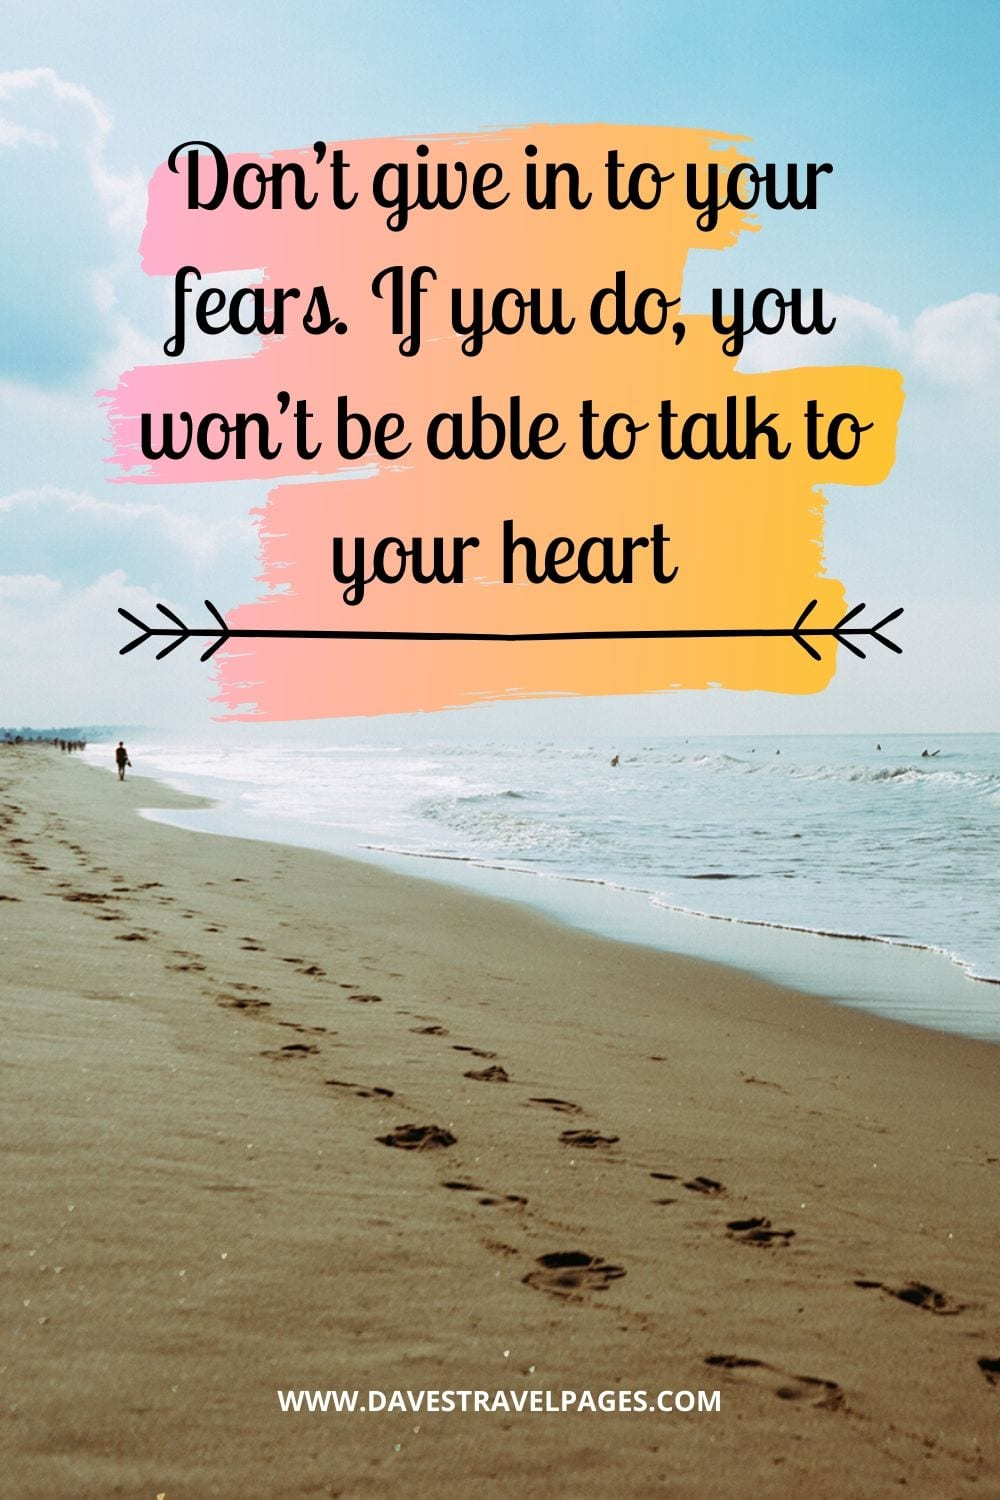 "Quotes of wisdom: ""Don't give in to your fears. If you do, you won't be able to talk to your heart."" – Paulo Coelho"